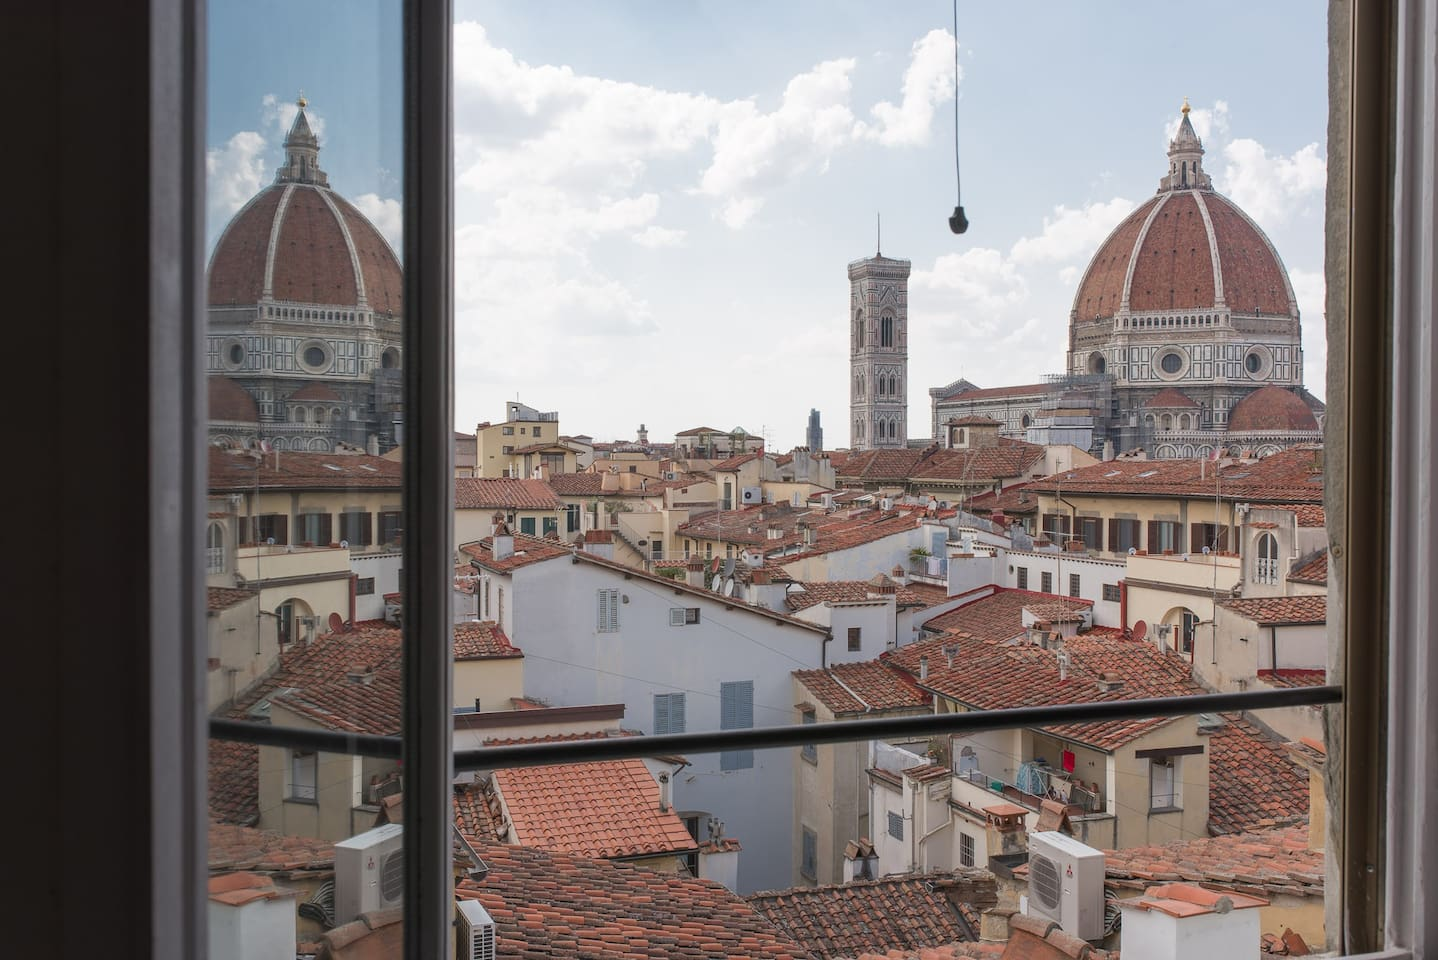 View of the Duomo from the living room